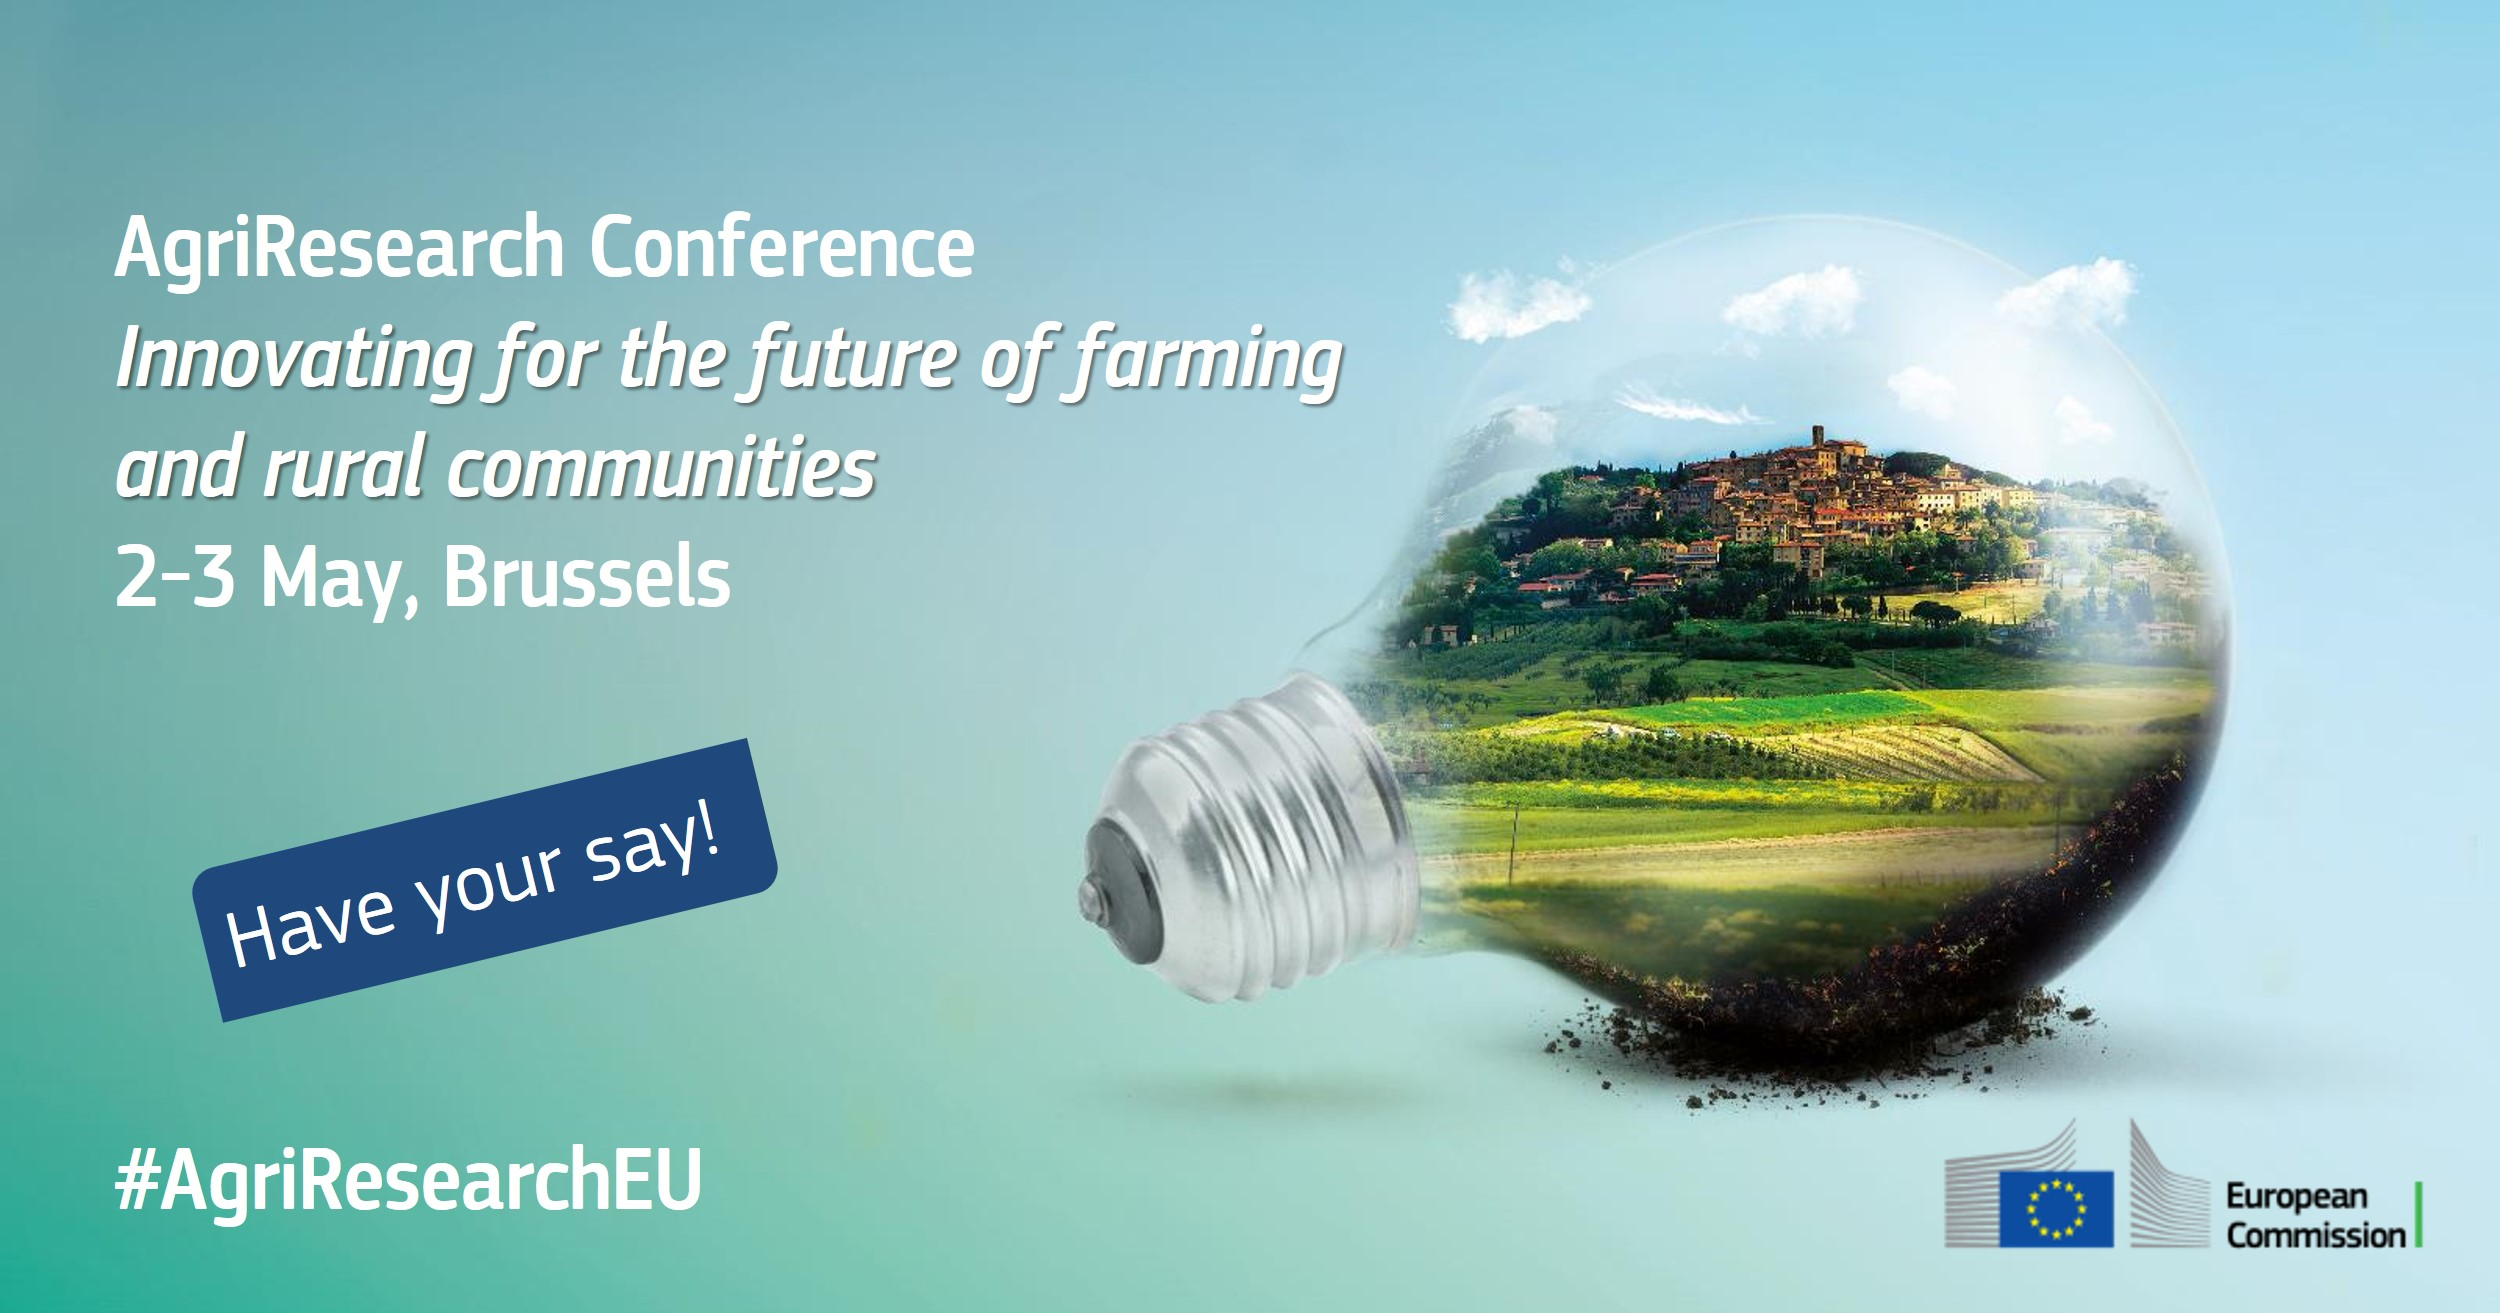 agriresearchconf visual 31225 103